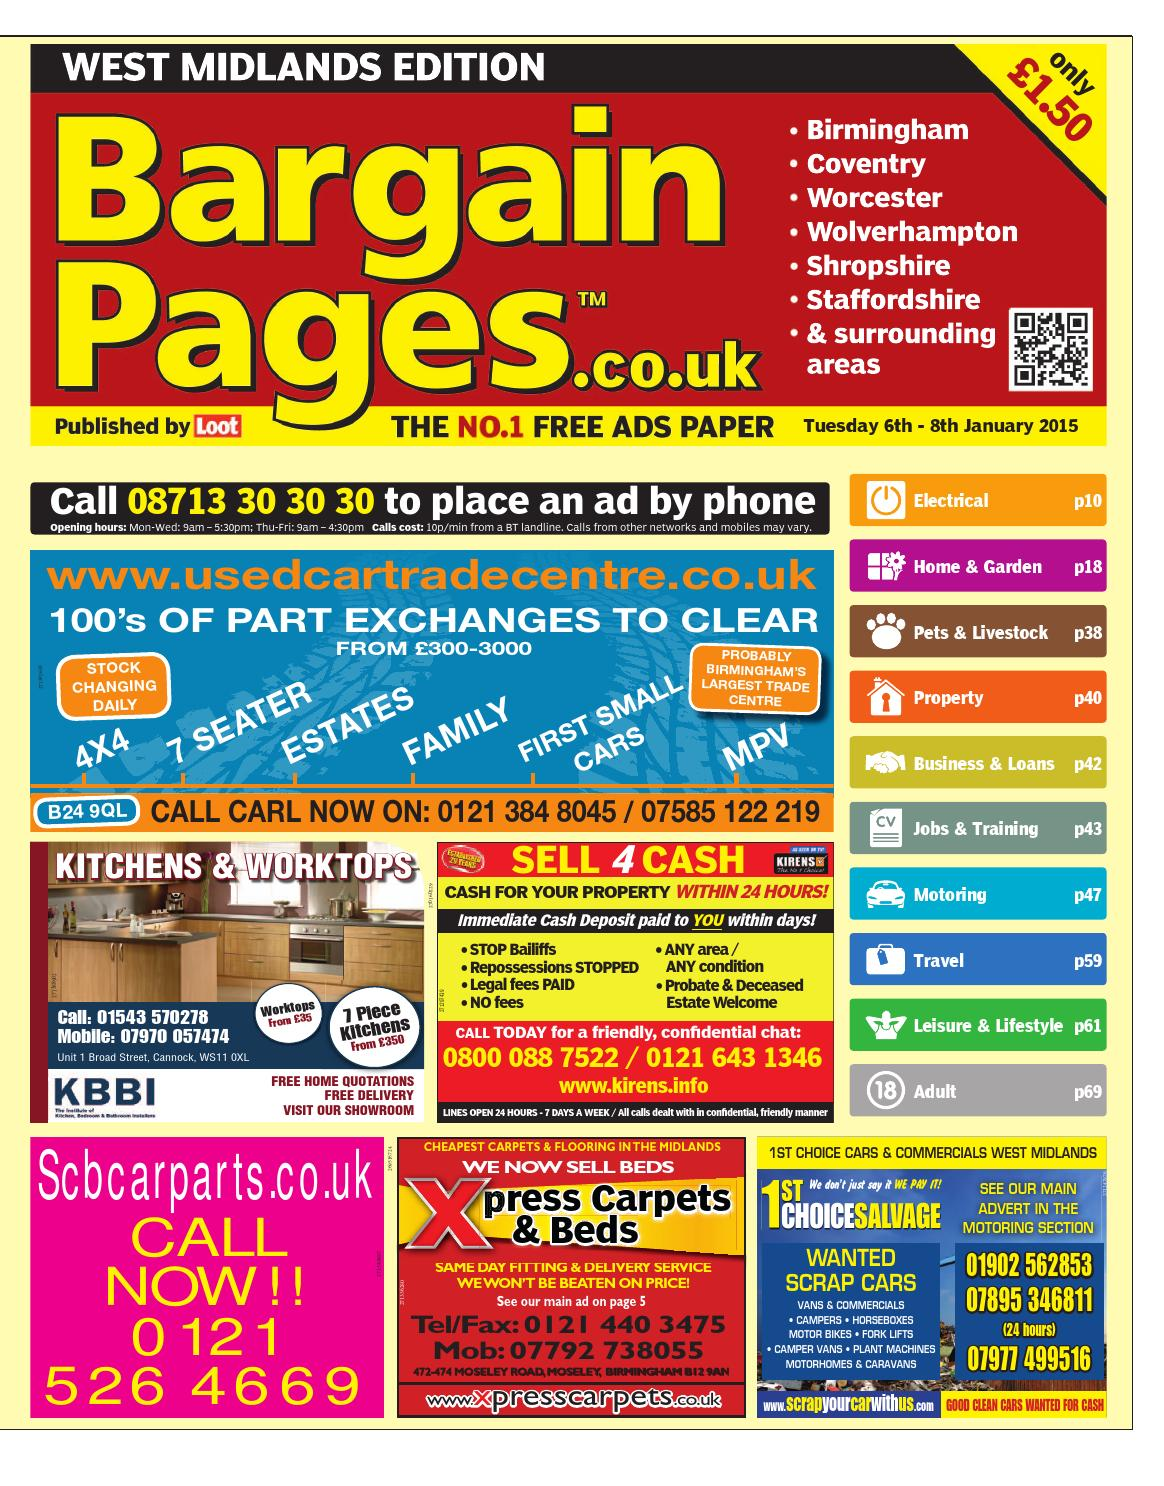 d2ebff1f60 Bargain Pages West Midlands, January 6th 2015 by Loot - issuu